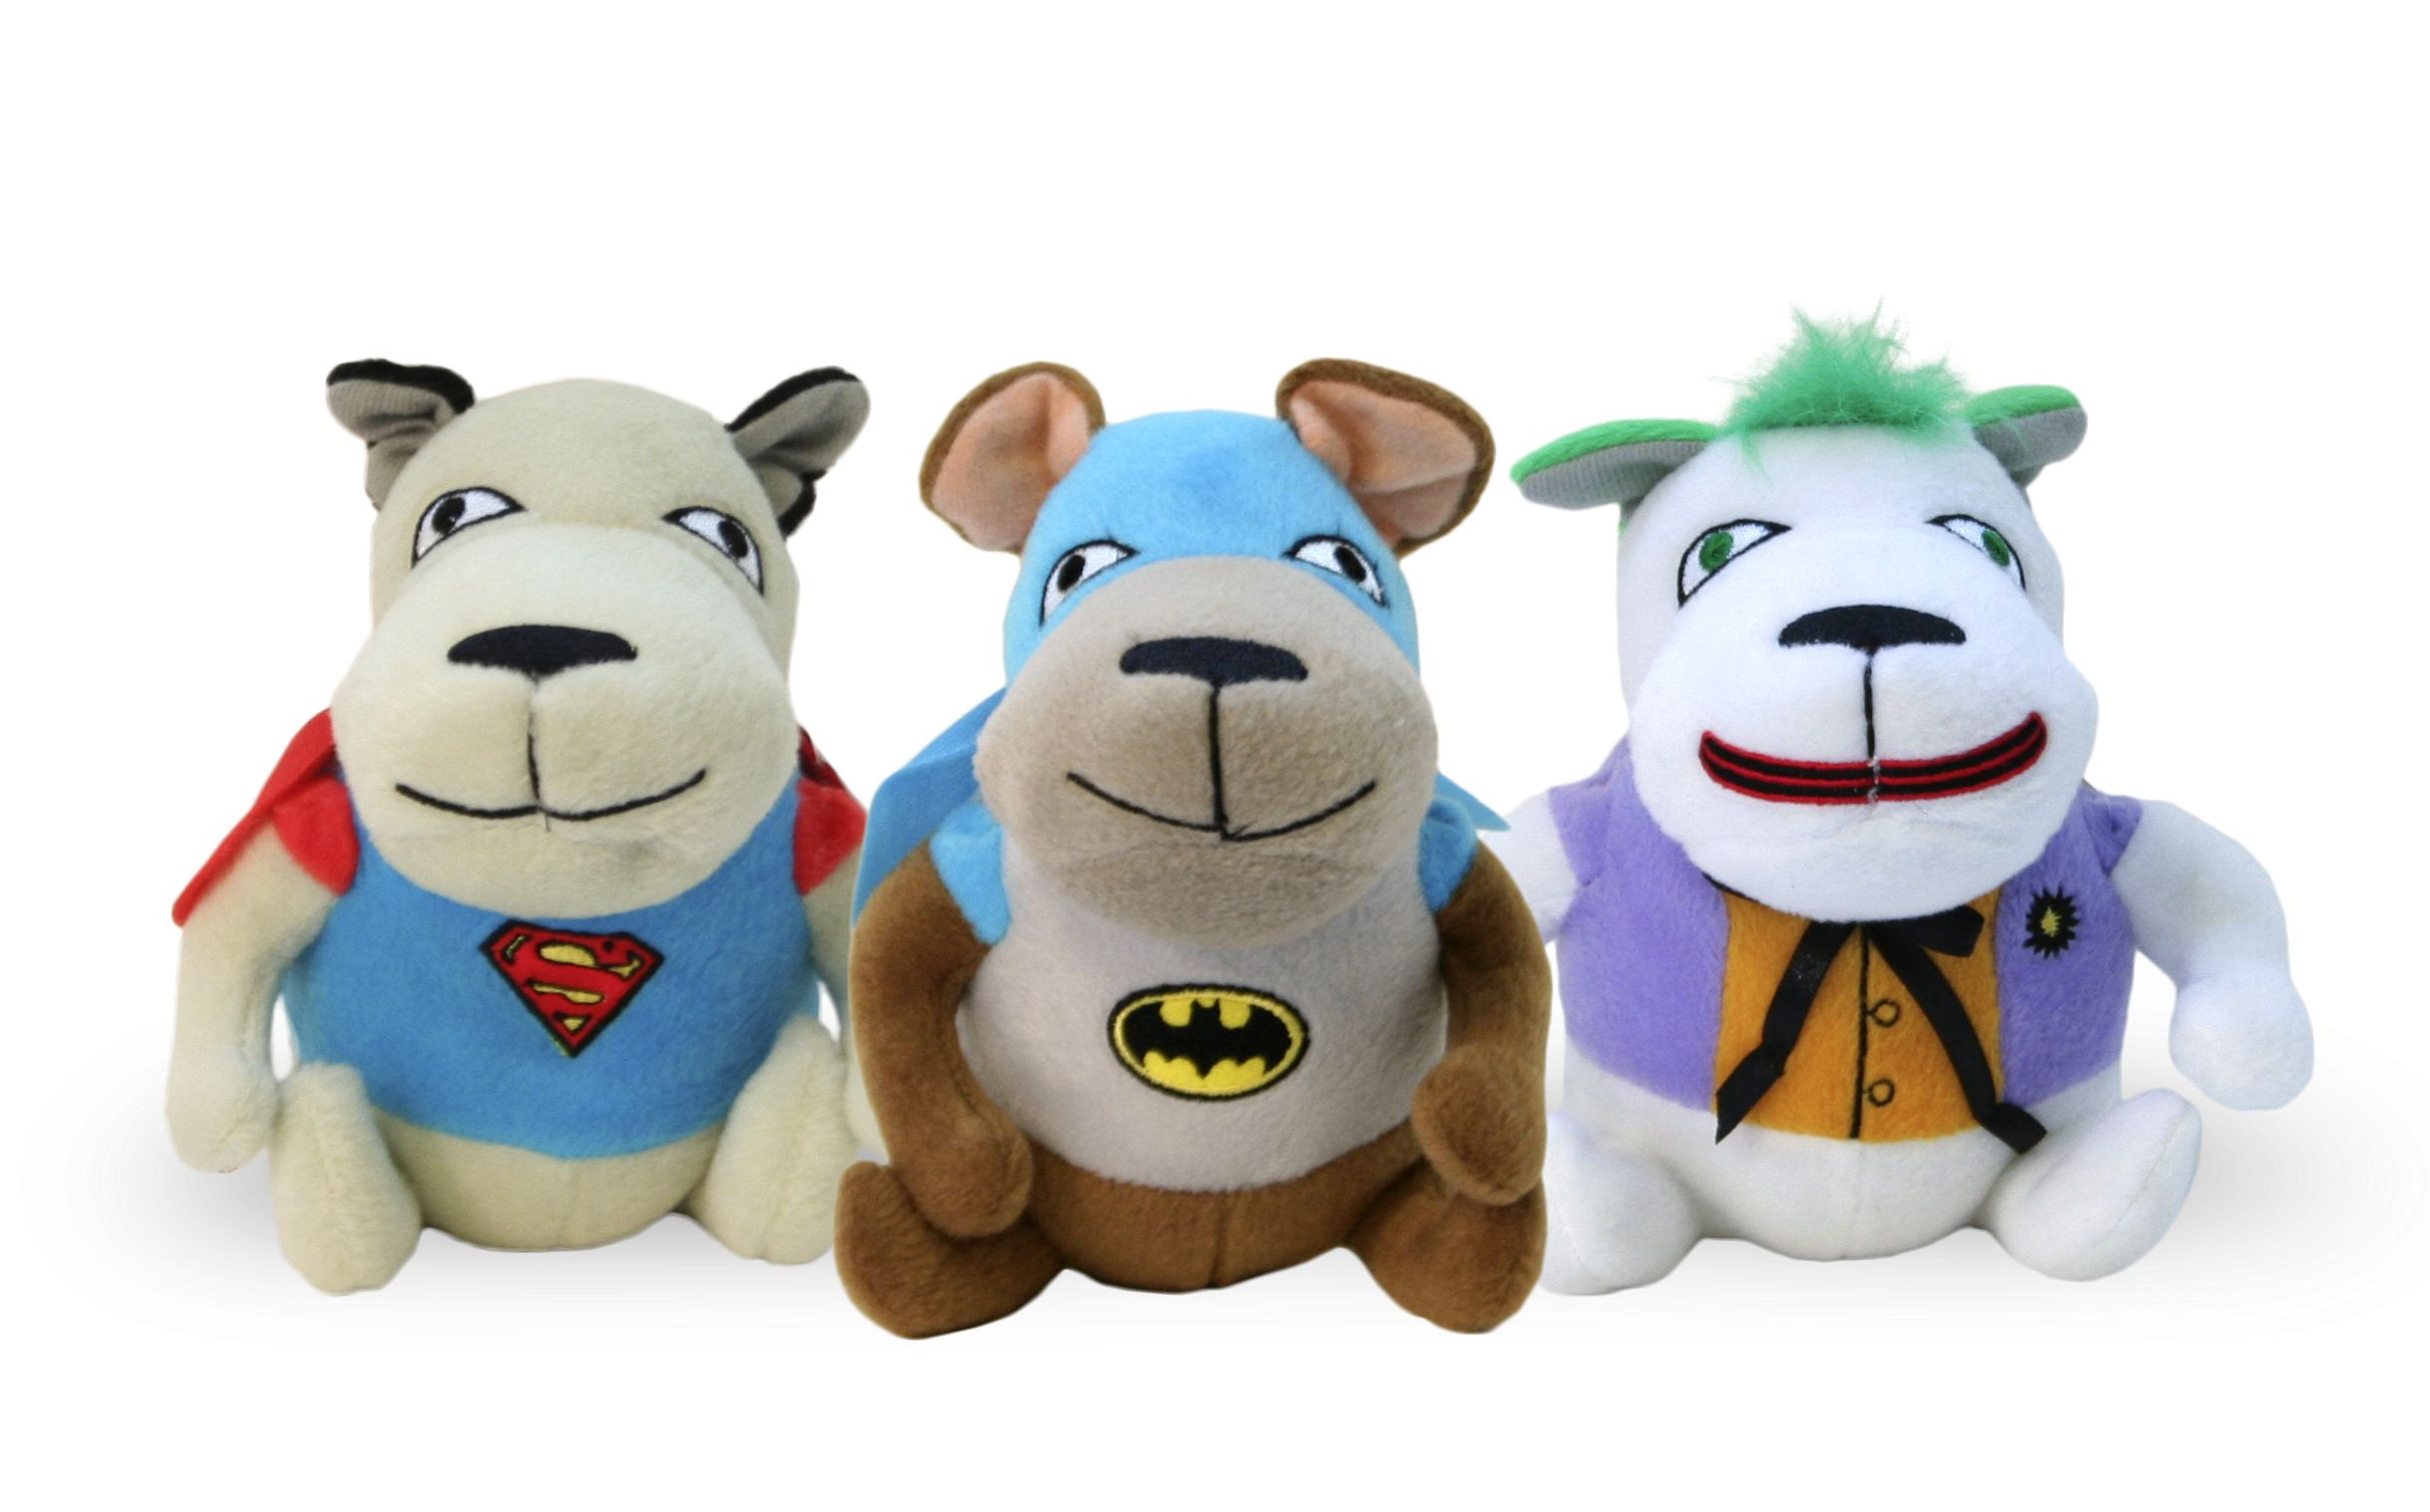 Check out these adorable plush superhero dog toys of all